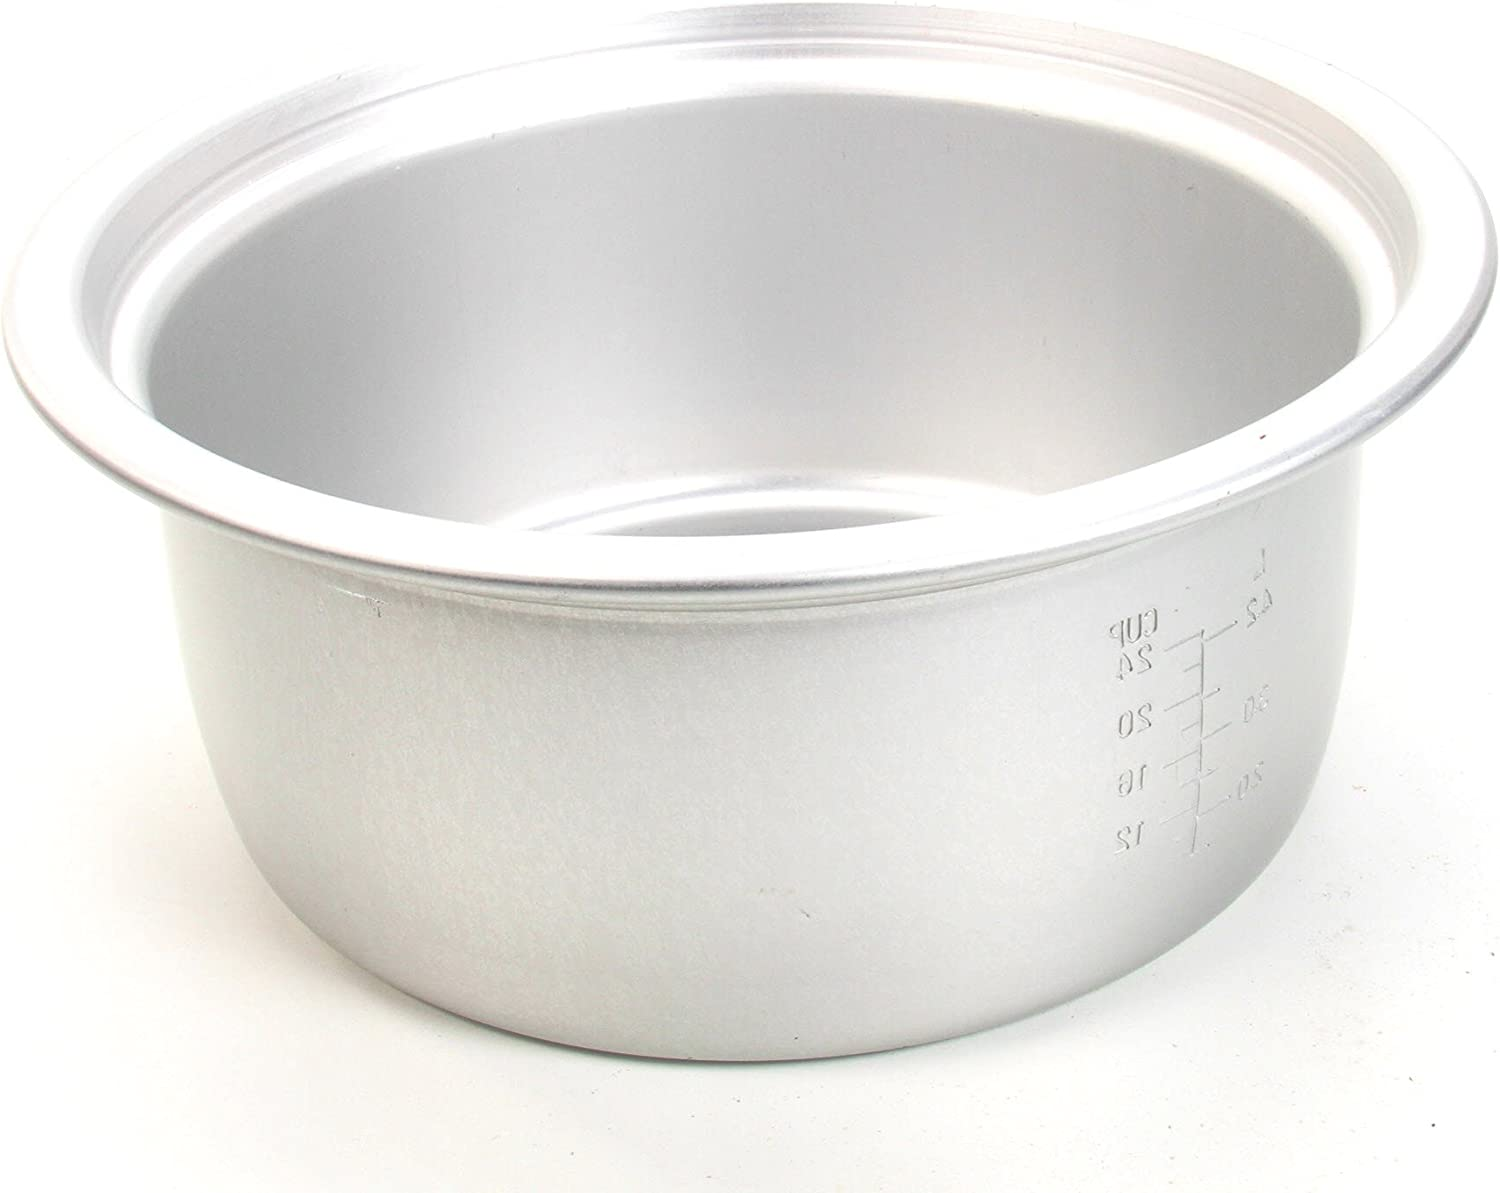 Town Food Service 56844 3mm Thick Rice Pot